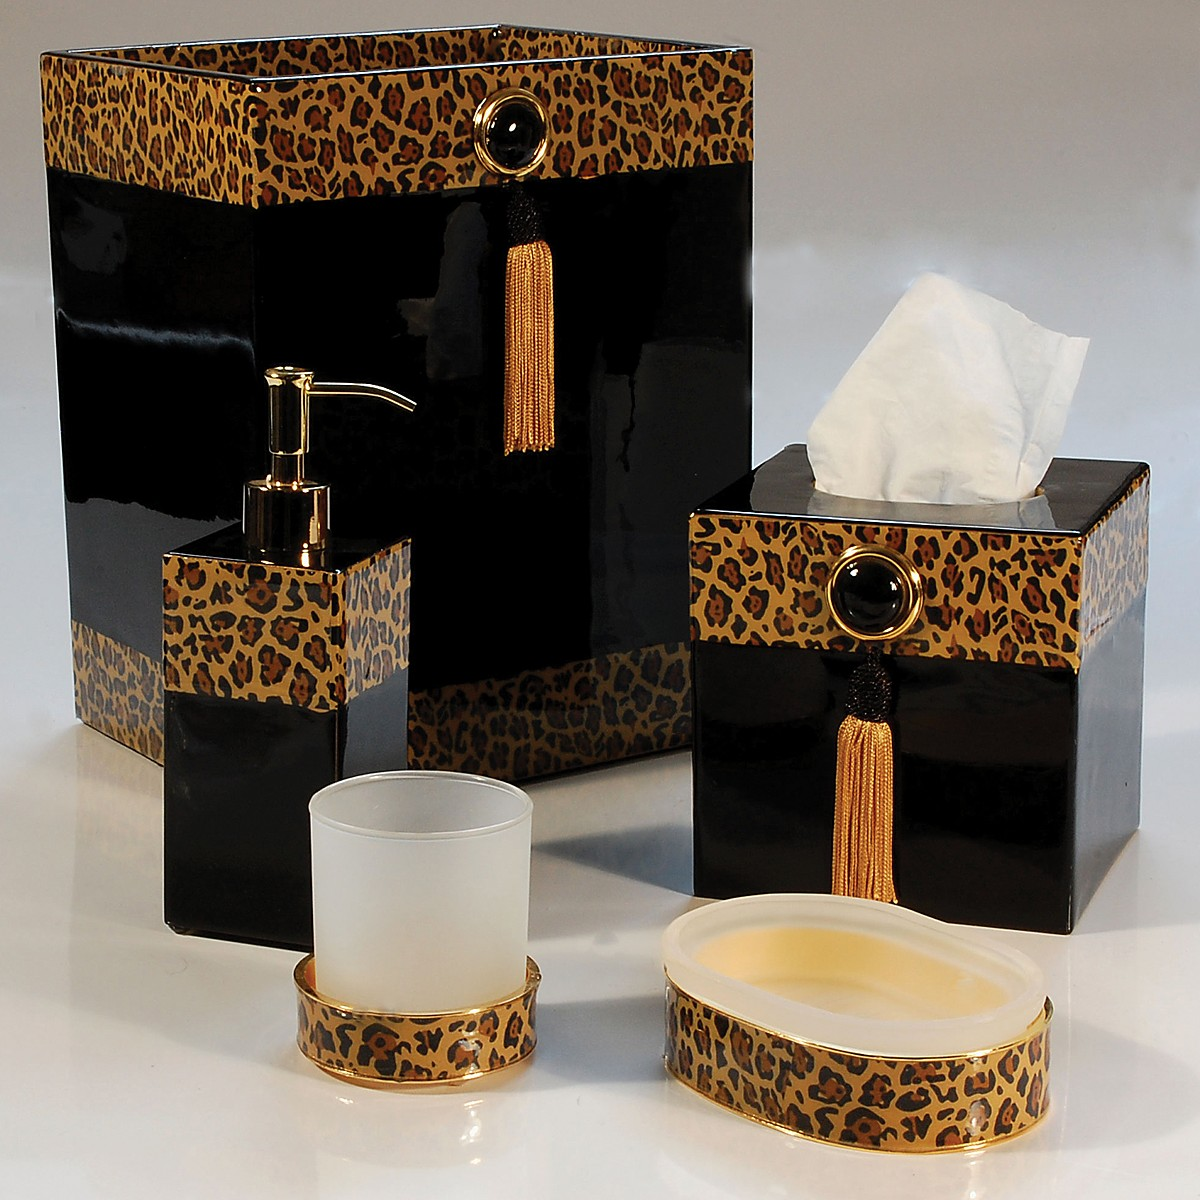 Home design ideas leopard bathroom decor for Animal bathroom decor